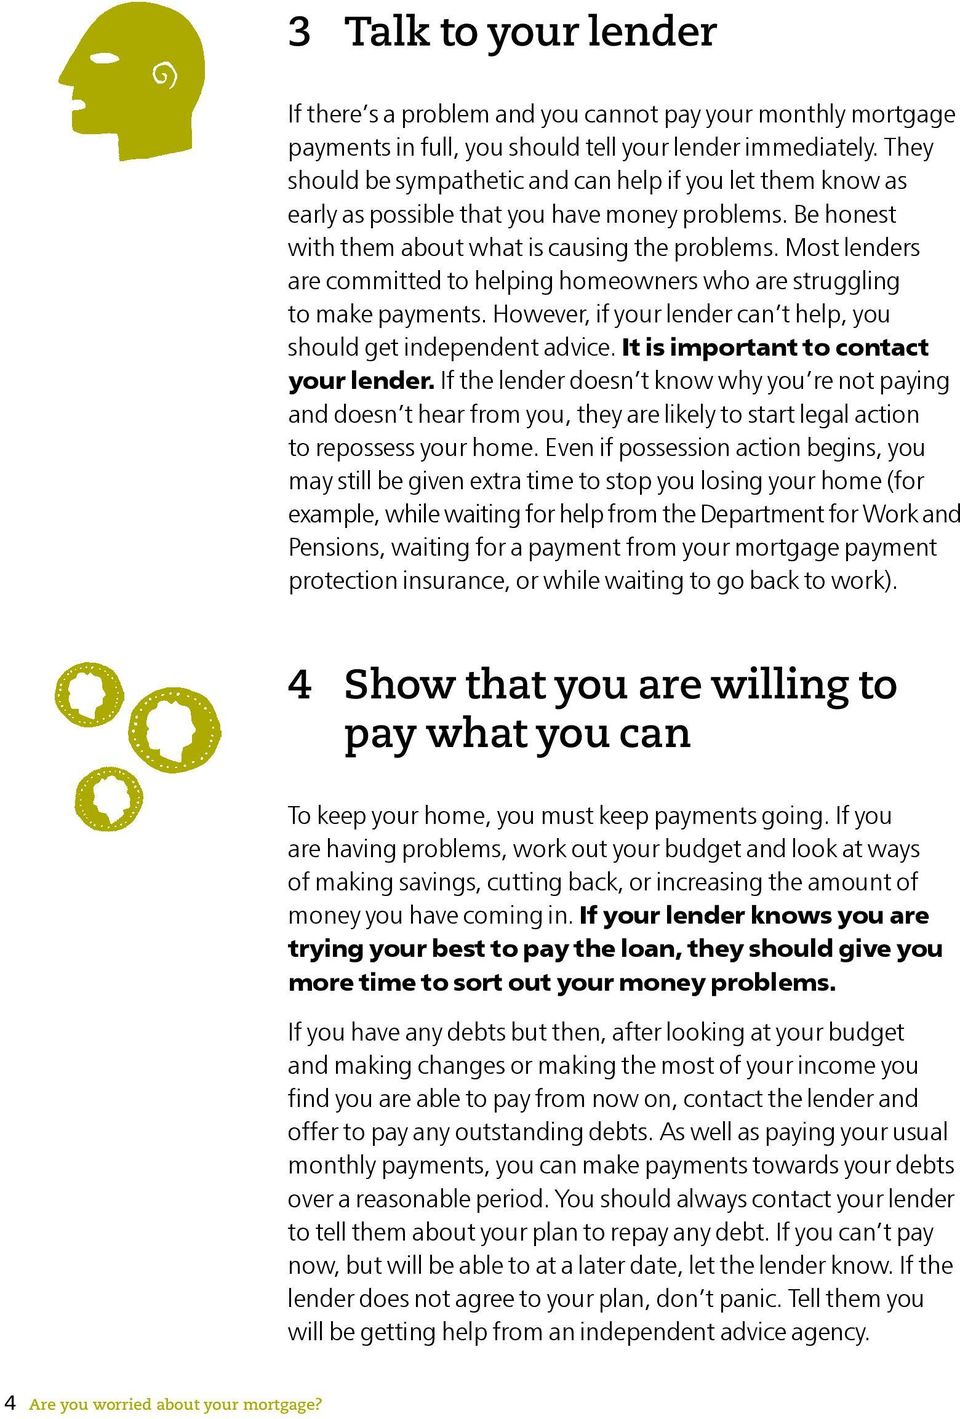 Most lenders are committed to helping homeowners who are struggling to make payments. However, if your lender can t help, you should get independent advice. It is important to contact your lender.